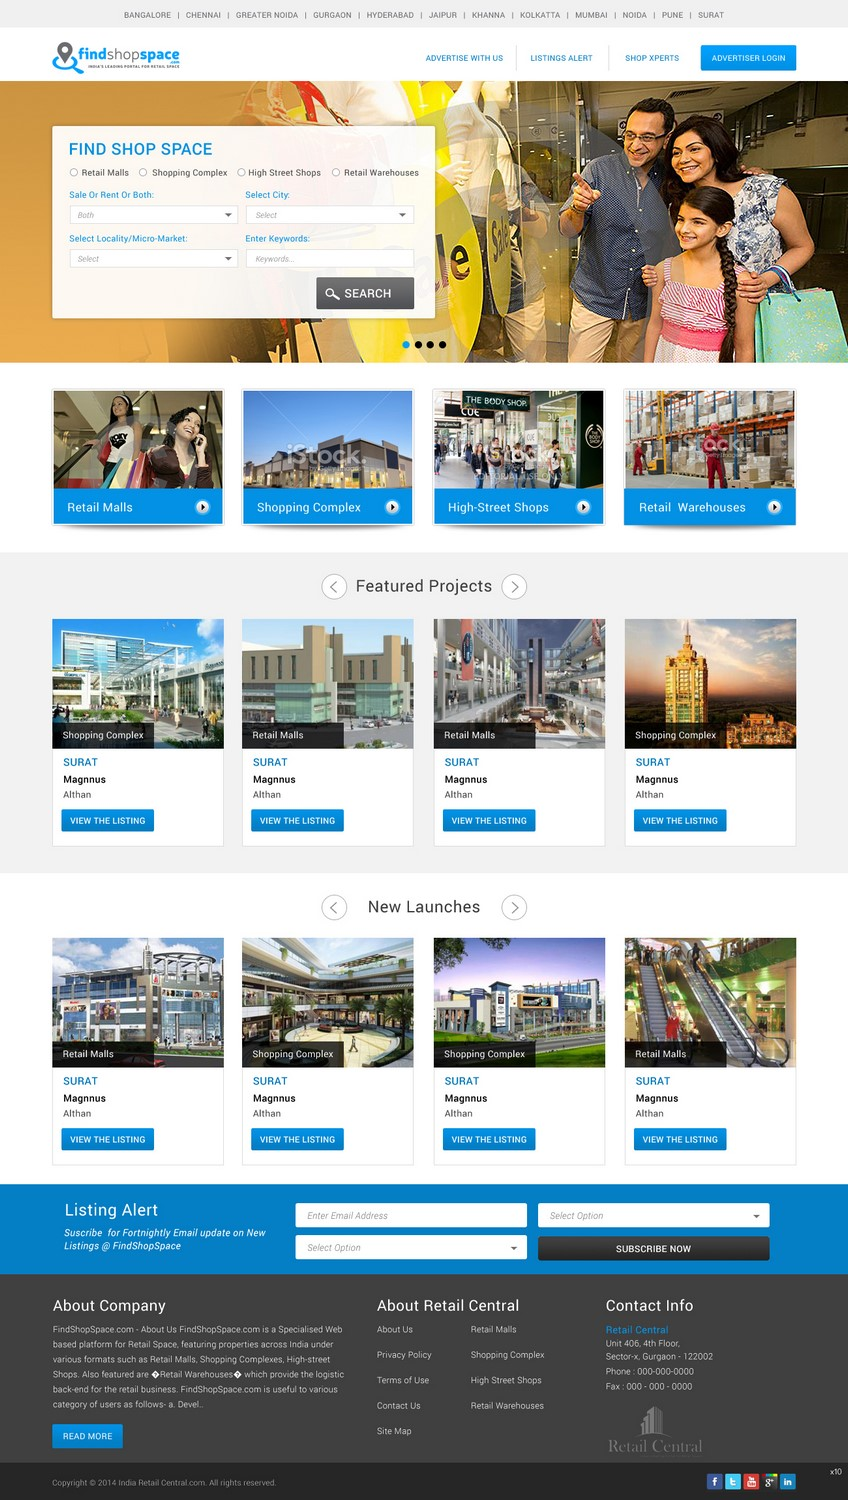 Feminine Colorful Advertising Web Design For A Company By Pb Design 5202039